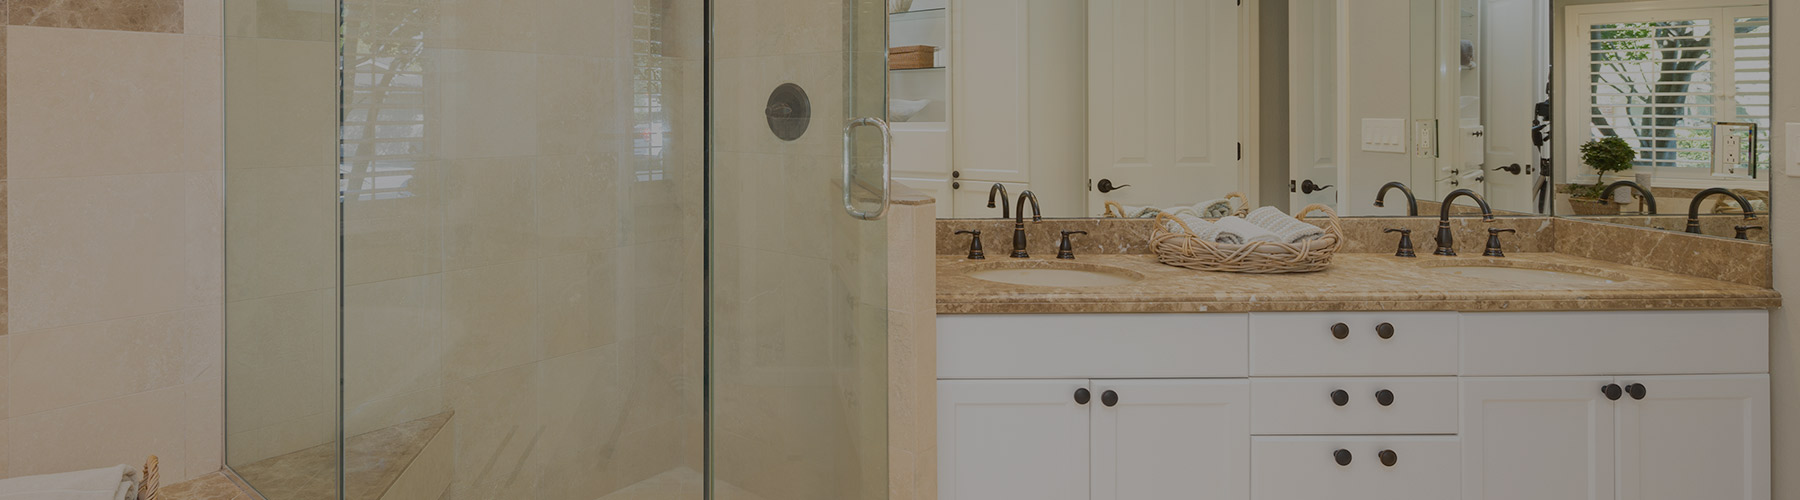 Walk in shower myrtle beach bathroom remodeling company - Bathroom vanities myrtle beach sc ...